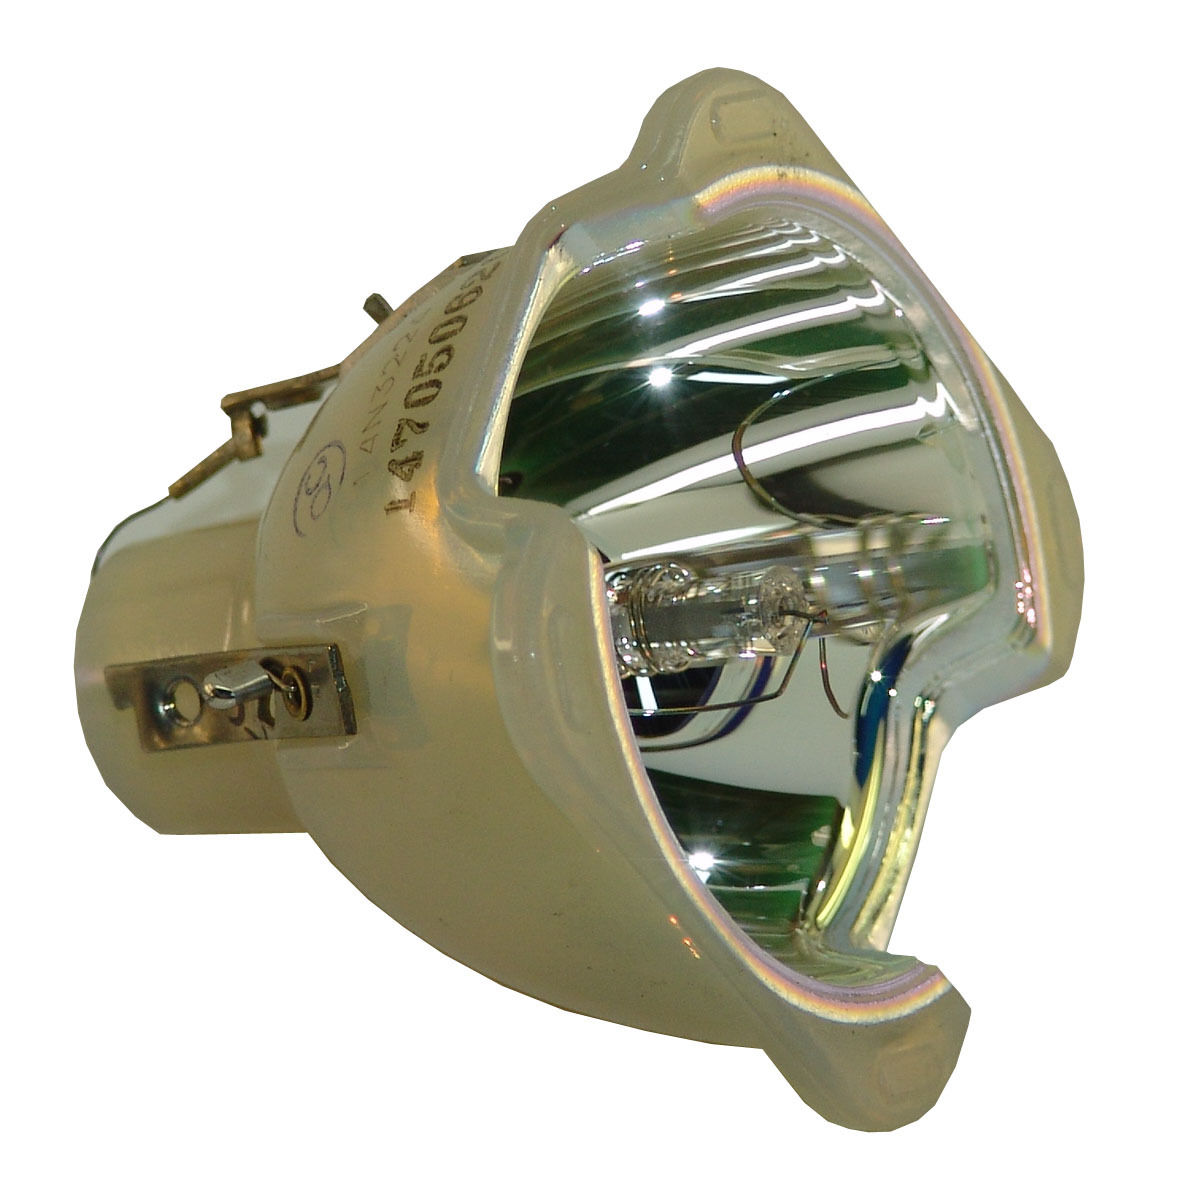 Comaptible Bare Bulb 725-10046 0N8279 310-6896 for DELL 5100MP Projector Lamp Bulbs without housing/case free shipping original projector lamp 310 6896 725 10046 for 5100mp projectors